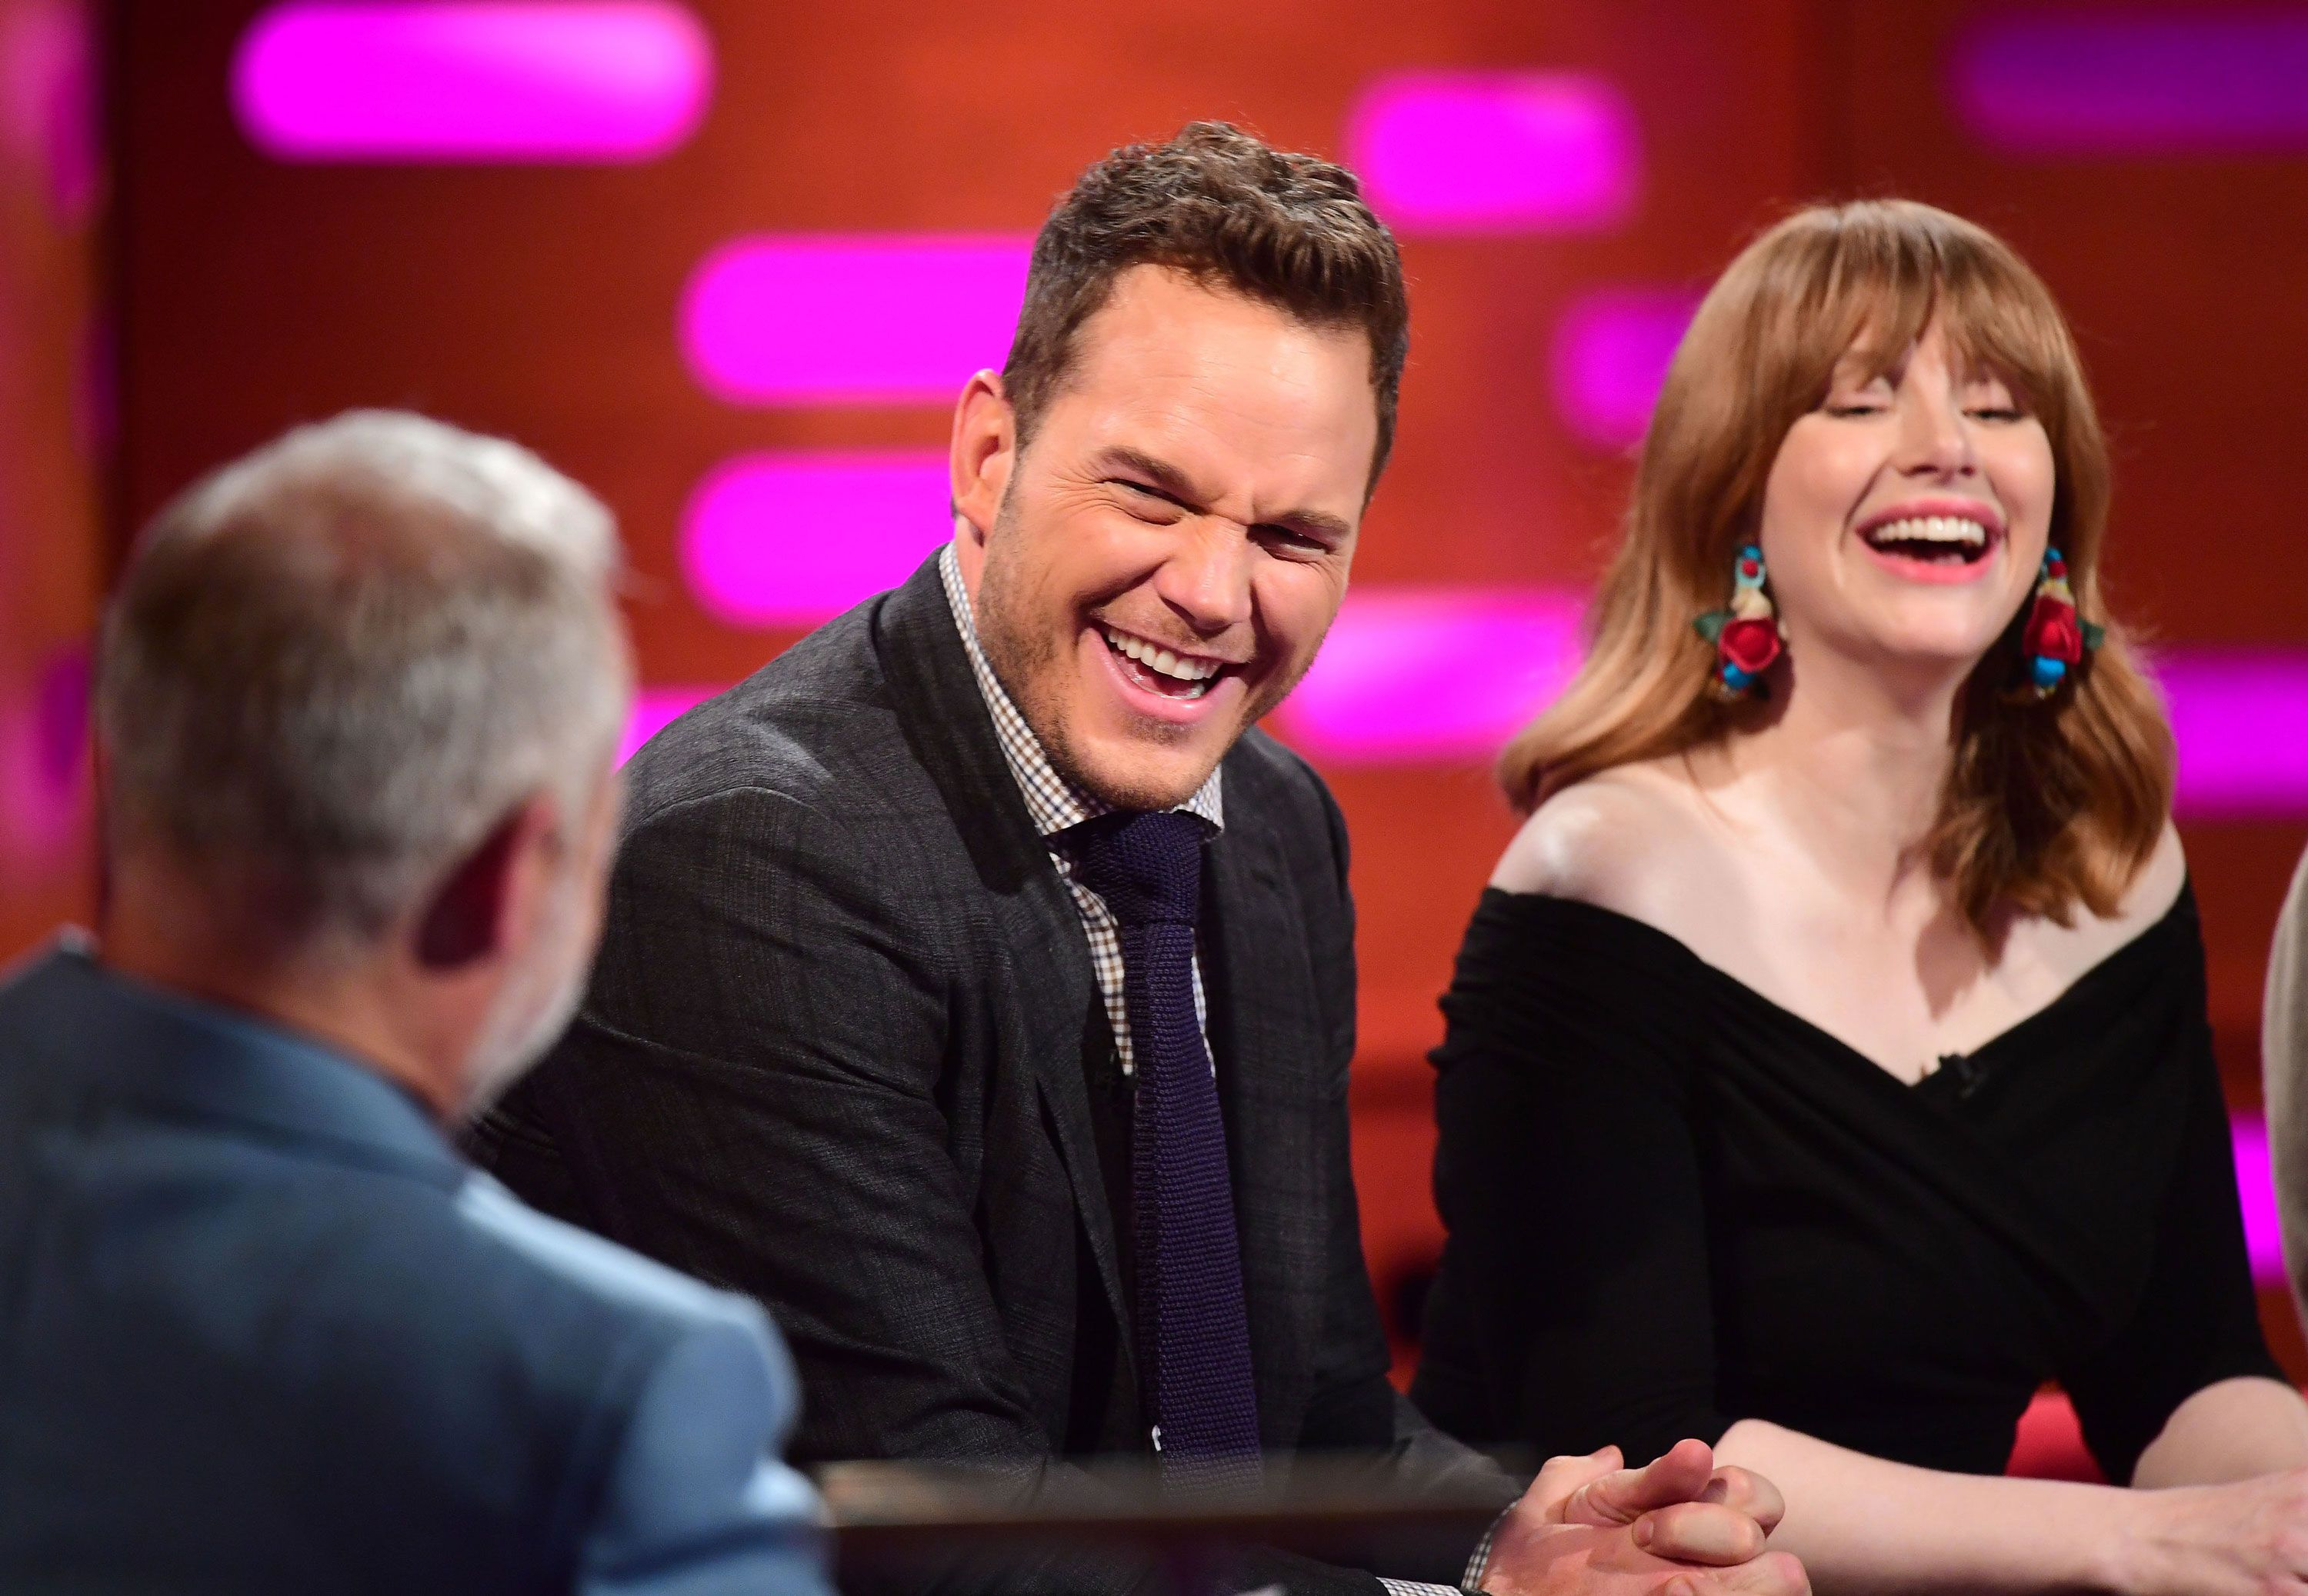 How Chris Pratt improvised Jurassic World: Fallen Kingdom's best line to Bryce Dallas Howard